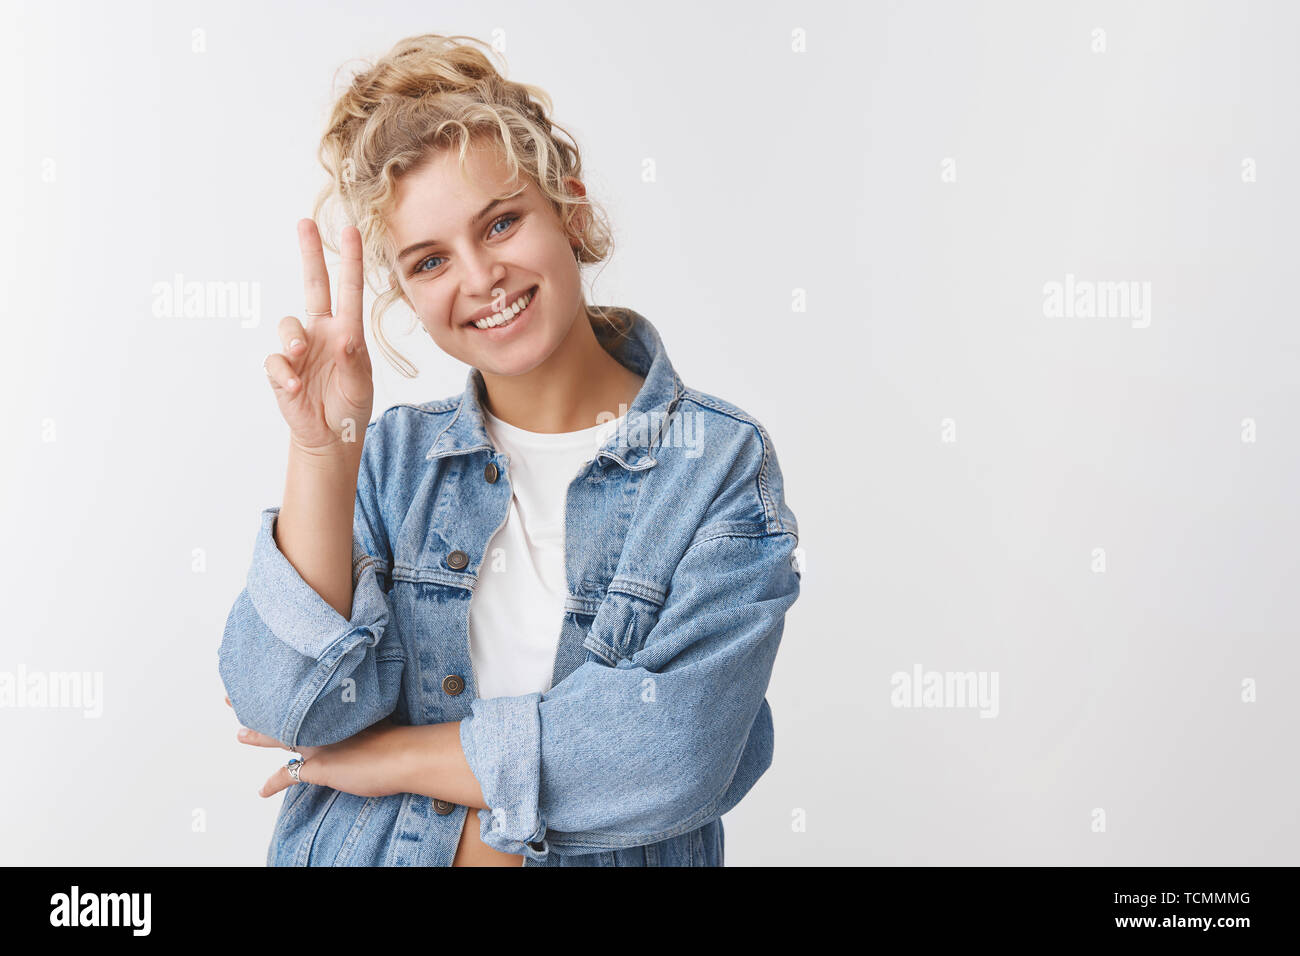 Joyful optimistic attractive blond european girl curly bun haircut show victory peace gesture staying cool having fun smiling broadly expressing happi - Stock Image